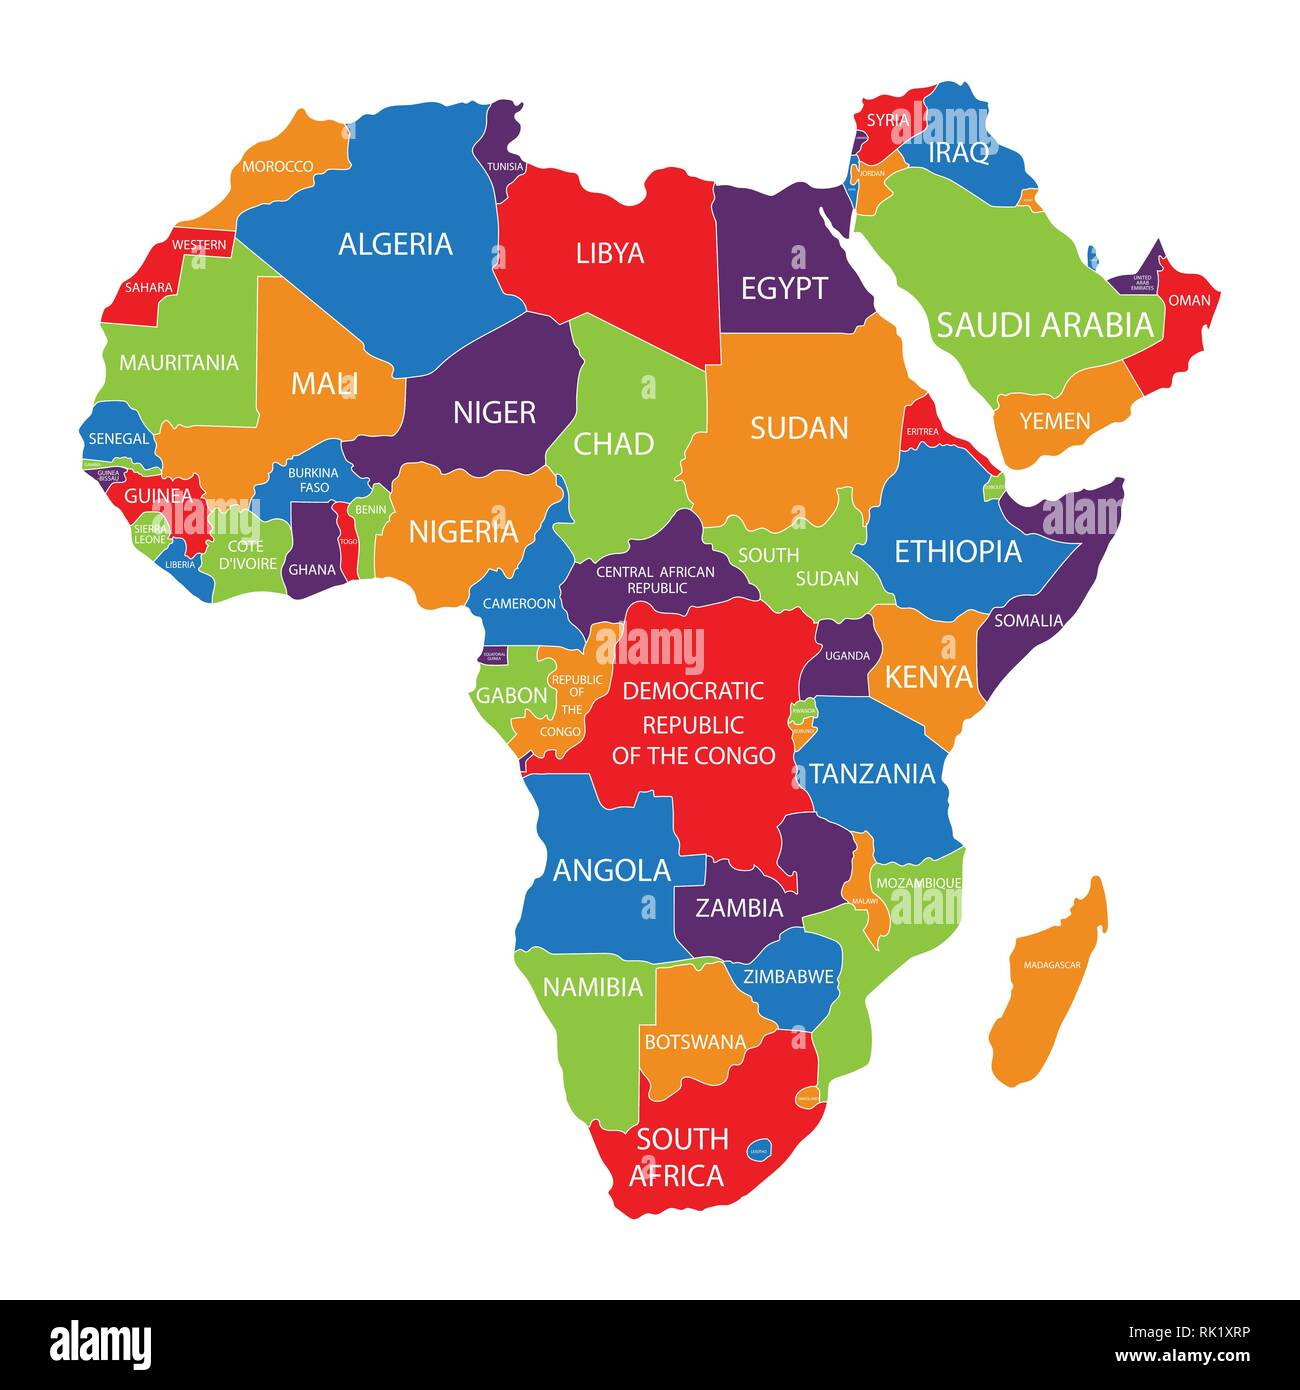 Vector Illustration Africa Map With Countries Names